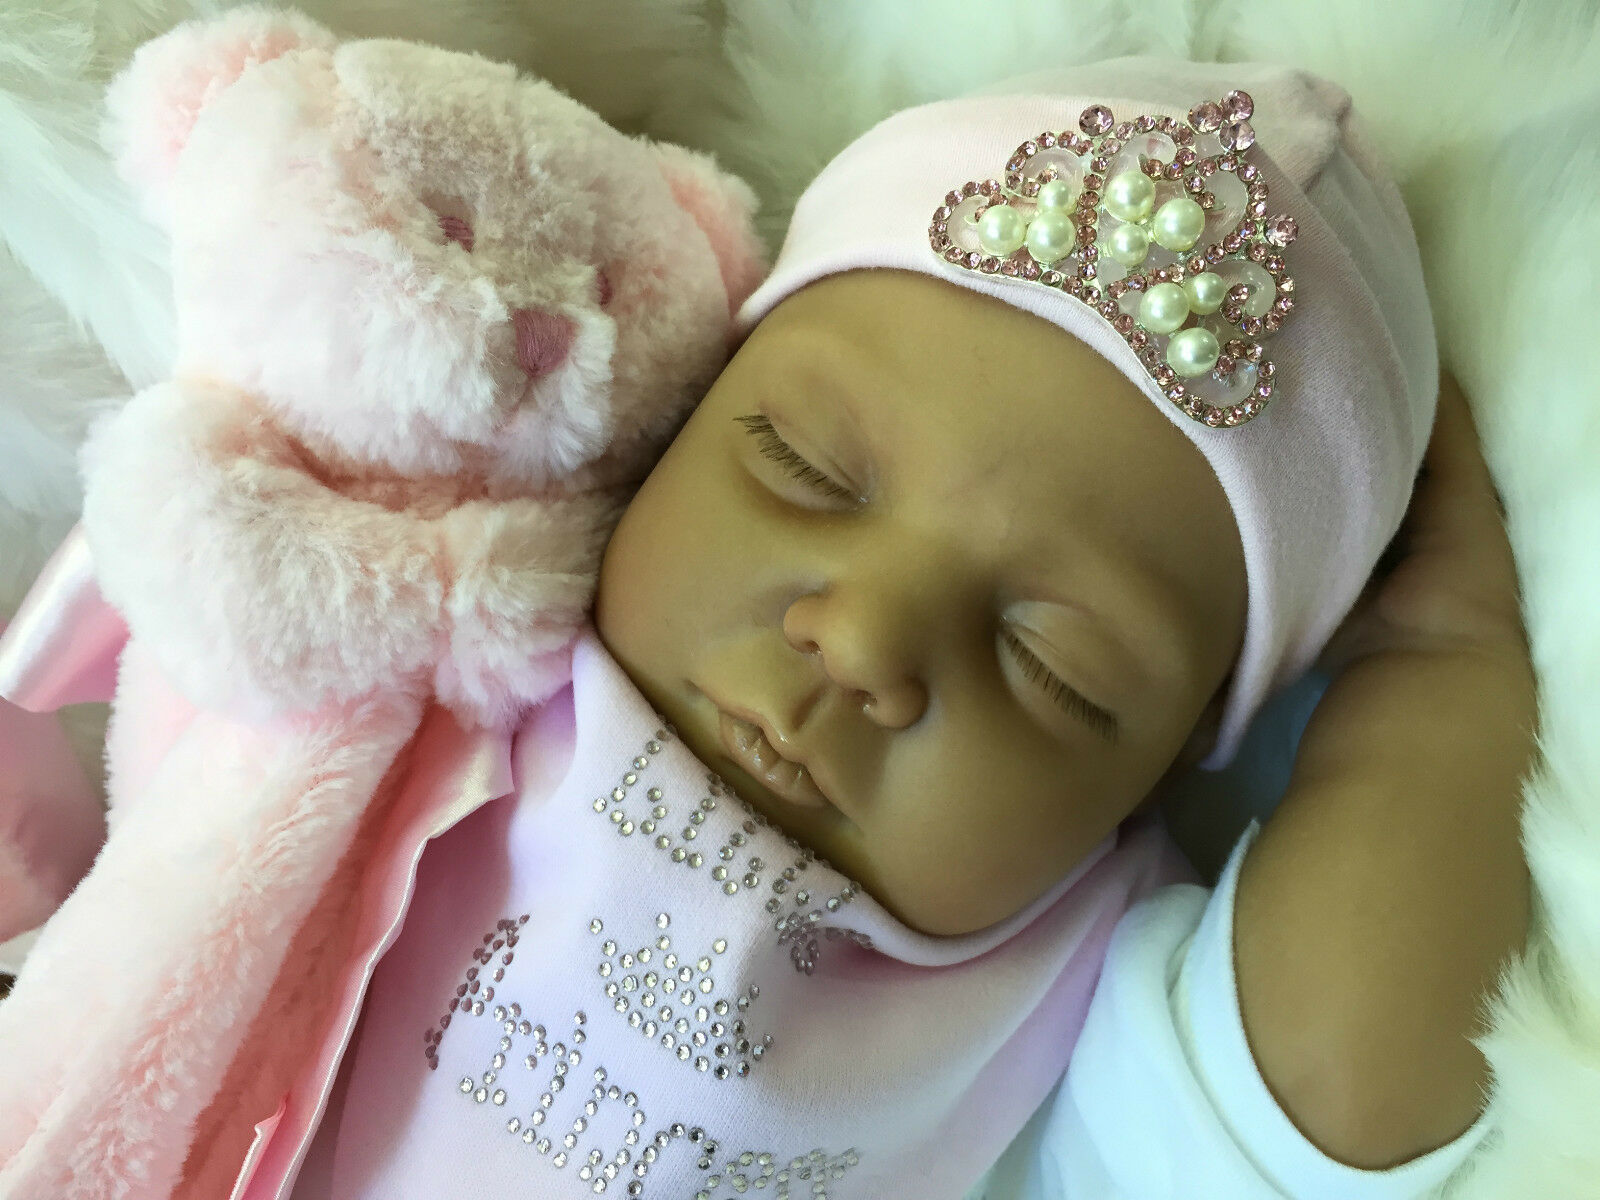 ETHNIC MIXED RACE ASIAN REBORN DOLL LIVVY BABY GIRL REALISTIC REALISTIC REALISTIC REAL LIFE DOLL 6db204